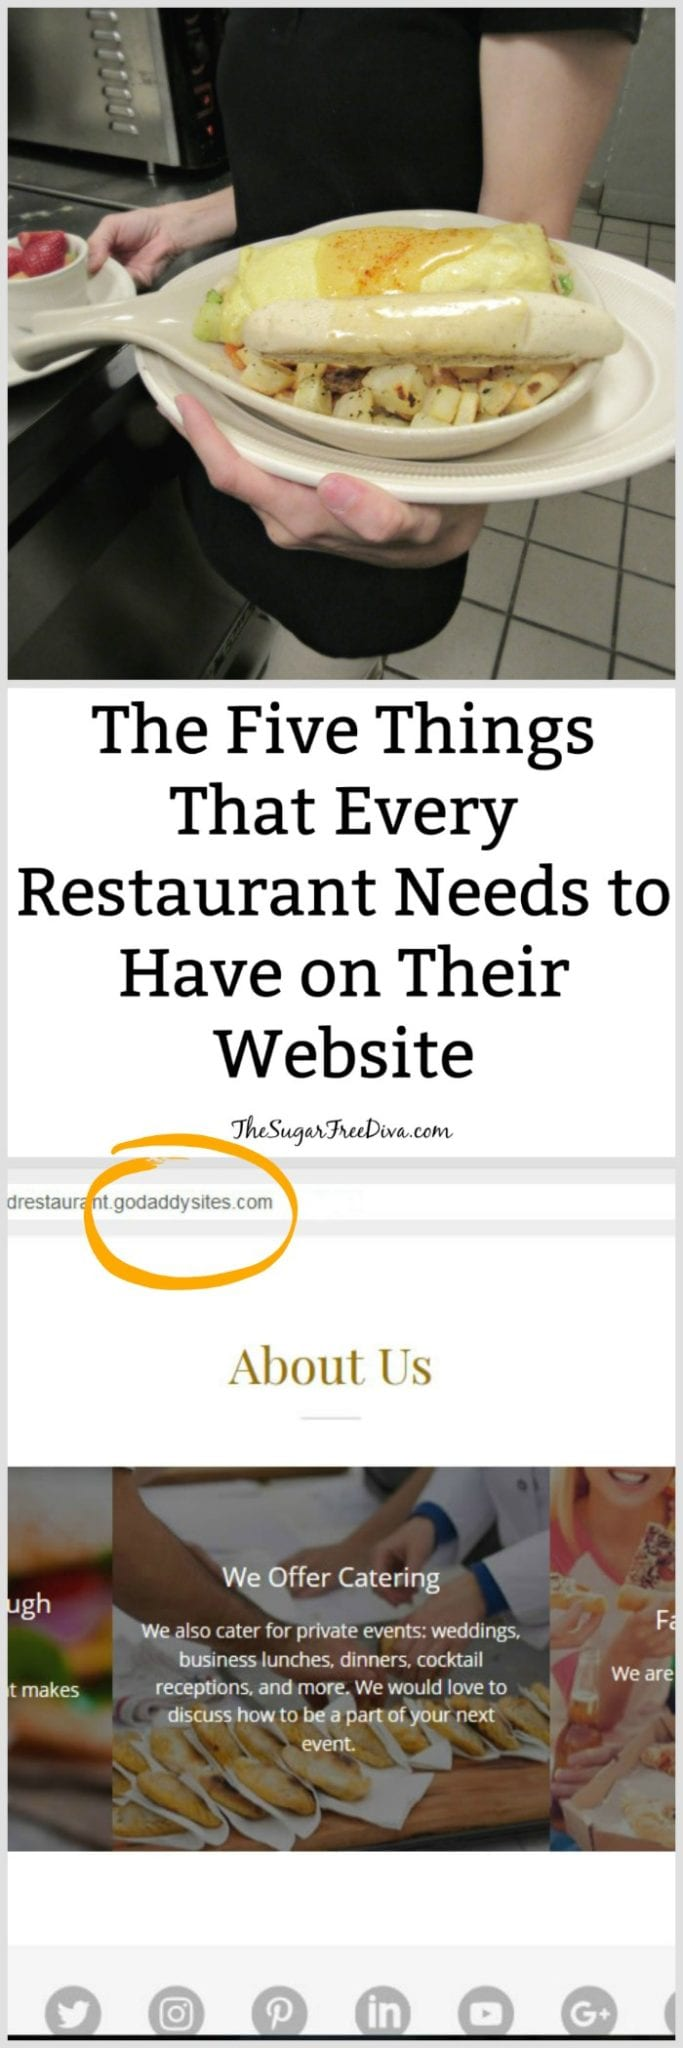 The Five Things That Every Restaurant Needs to Have on Their Website